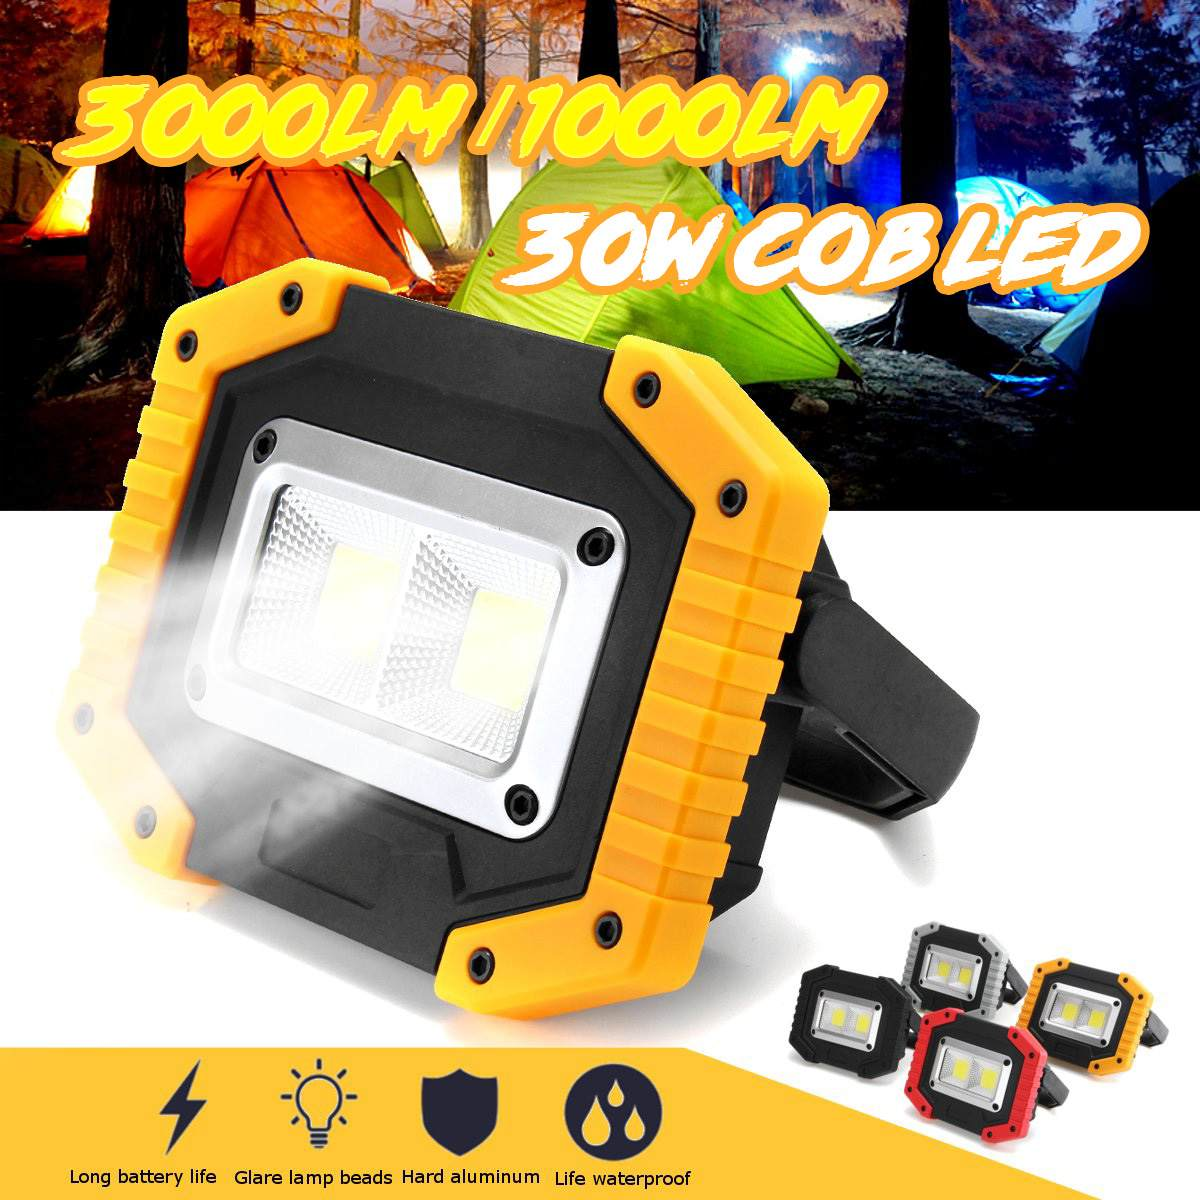 30W 2 COB LED Portable Spotlight Rechargeable Outdoor Working Light Hunting Camping Lamp Floodlight Searchlight 18650 Battery|Floodlights| |  -